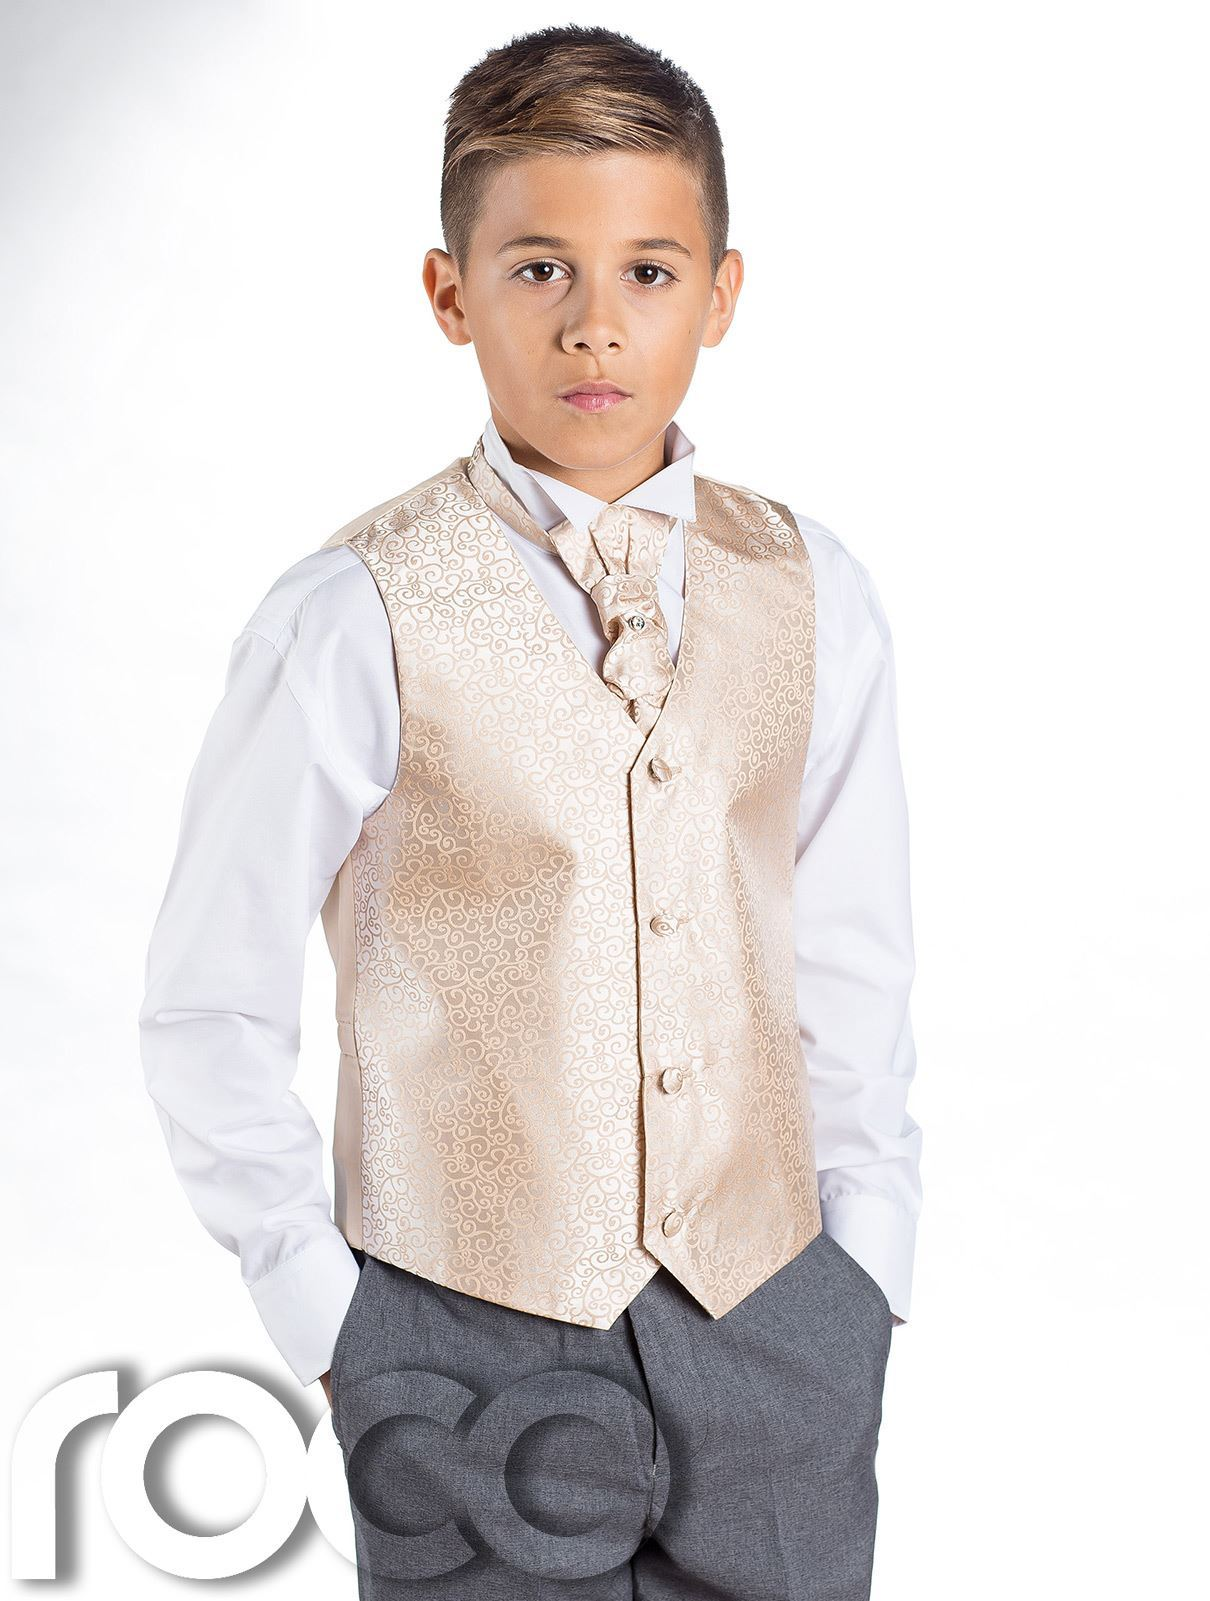 page boy suits boys-swirl-waistcoat-suit-page-boy-suits-boys- hmcksda